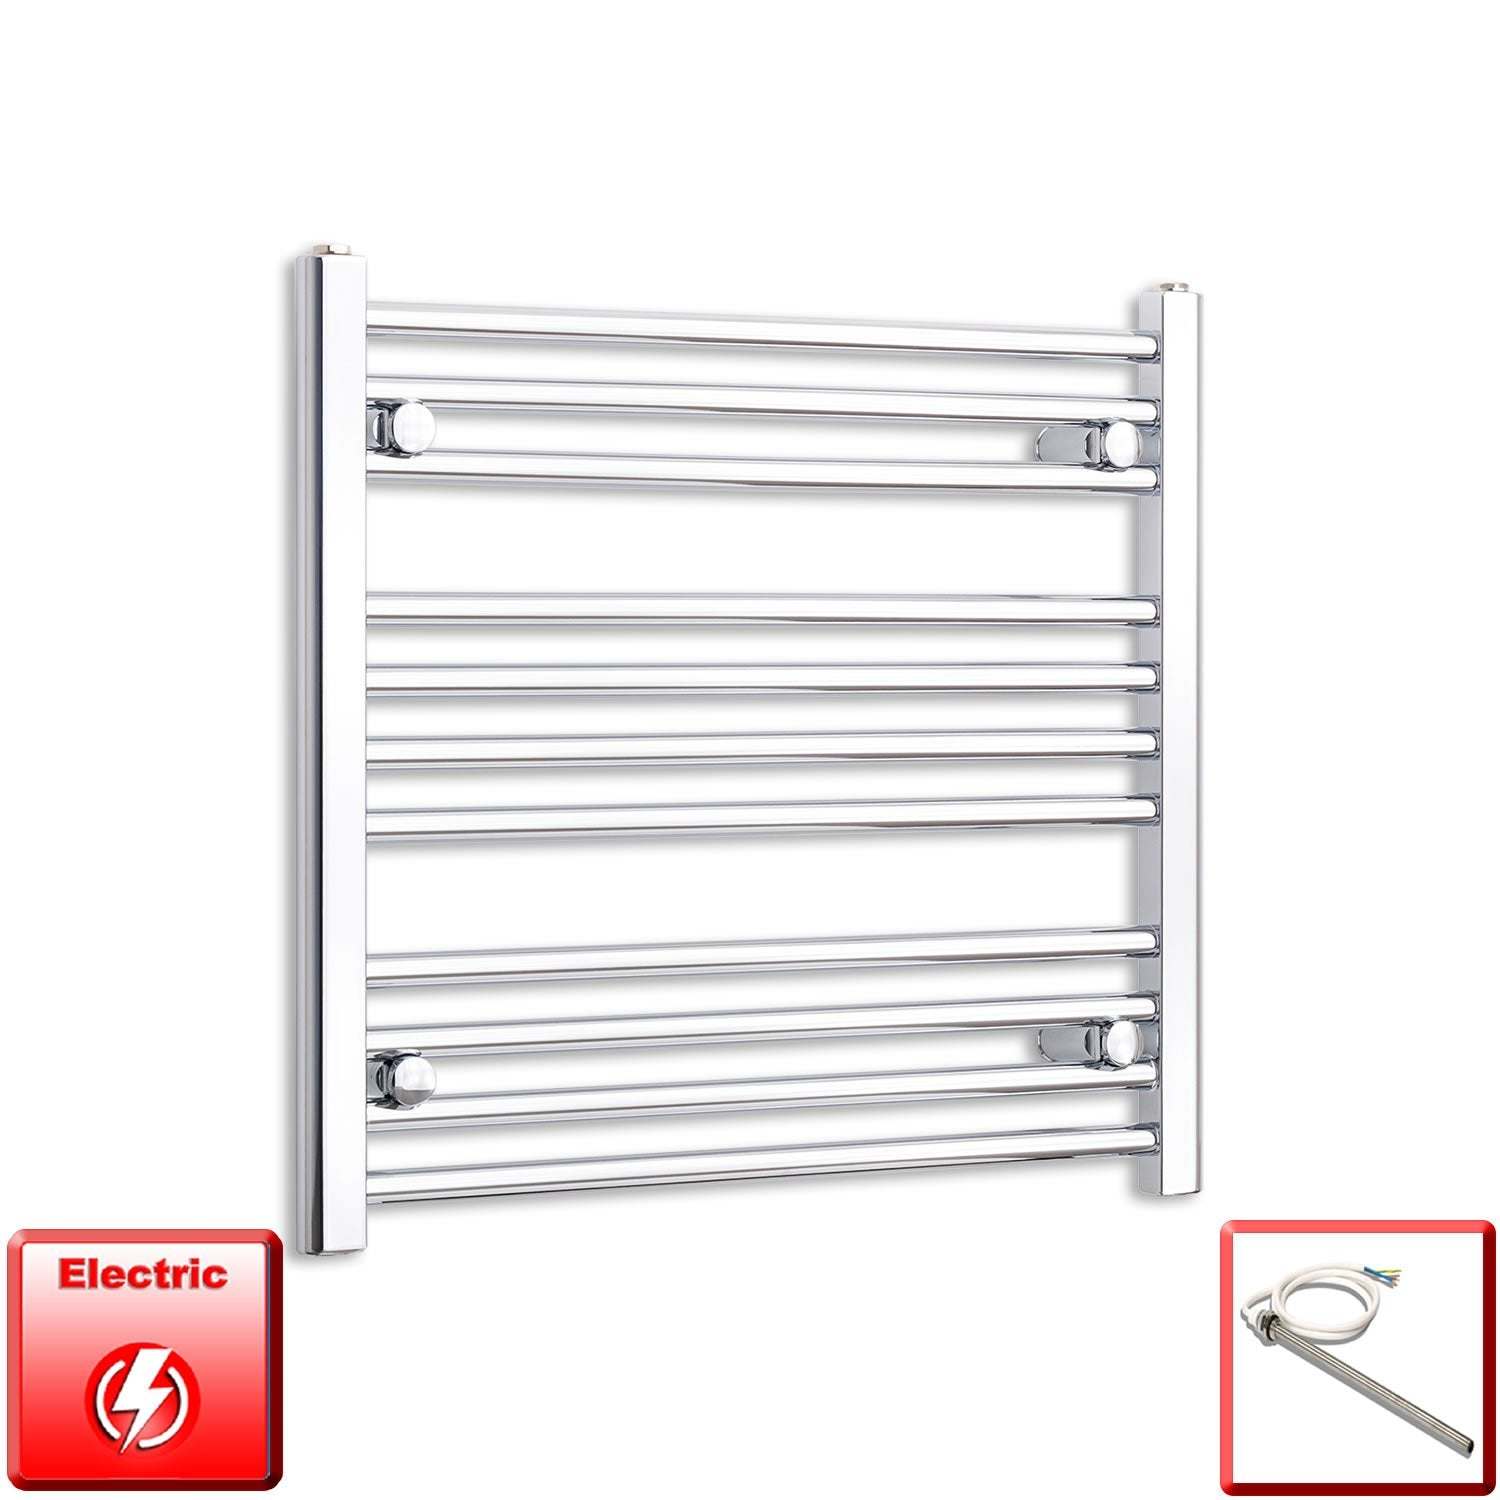 650mm Wide 600mm High Flat Chrome Pre-Filled Electric Heated Towel Rail Radiator HTR,Single Heat Element